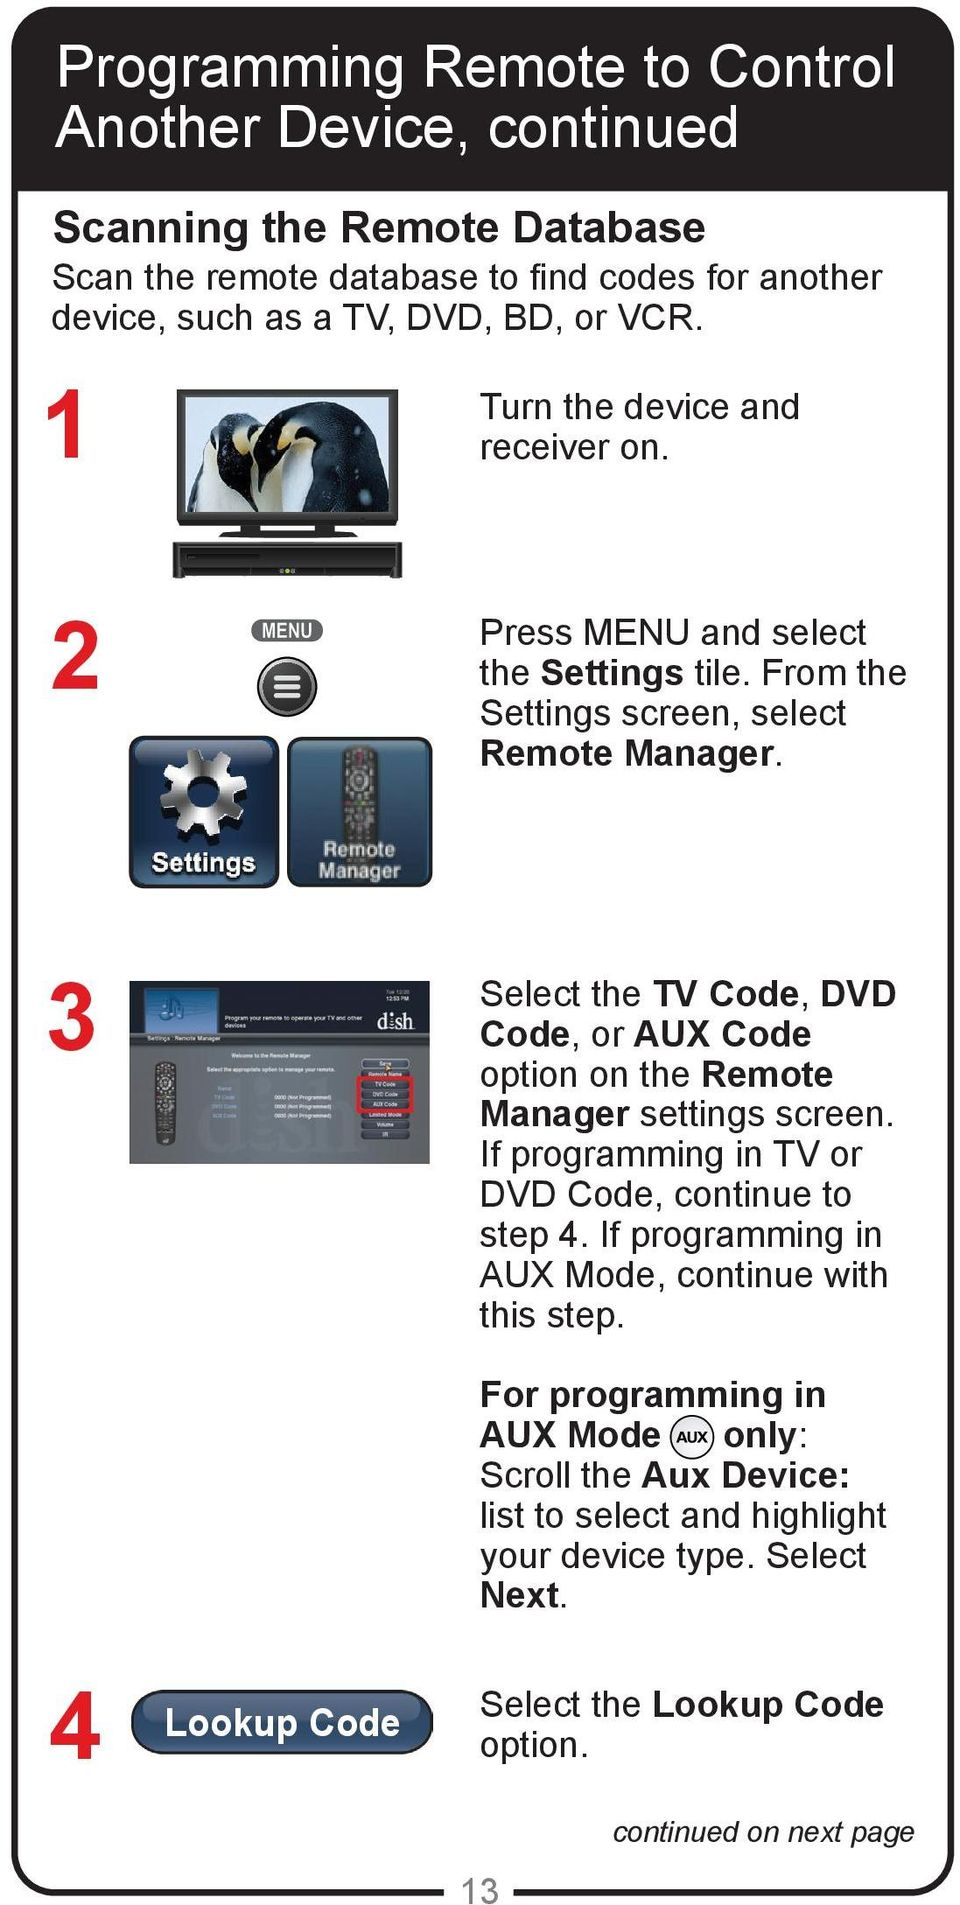 3 Select the TV Code, DVD Code, or AUX Code option on the Remote Manager settings screen. If programming in TV or DVD Code, continue to step 4.